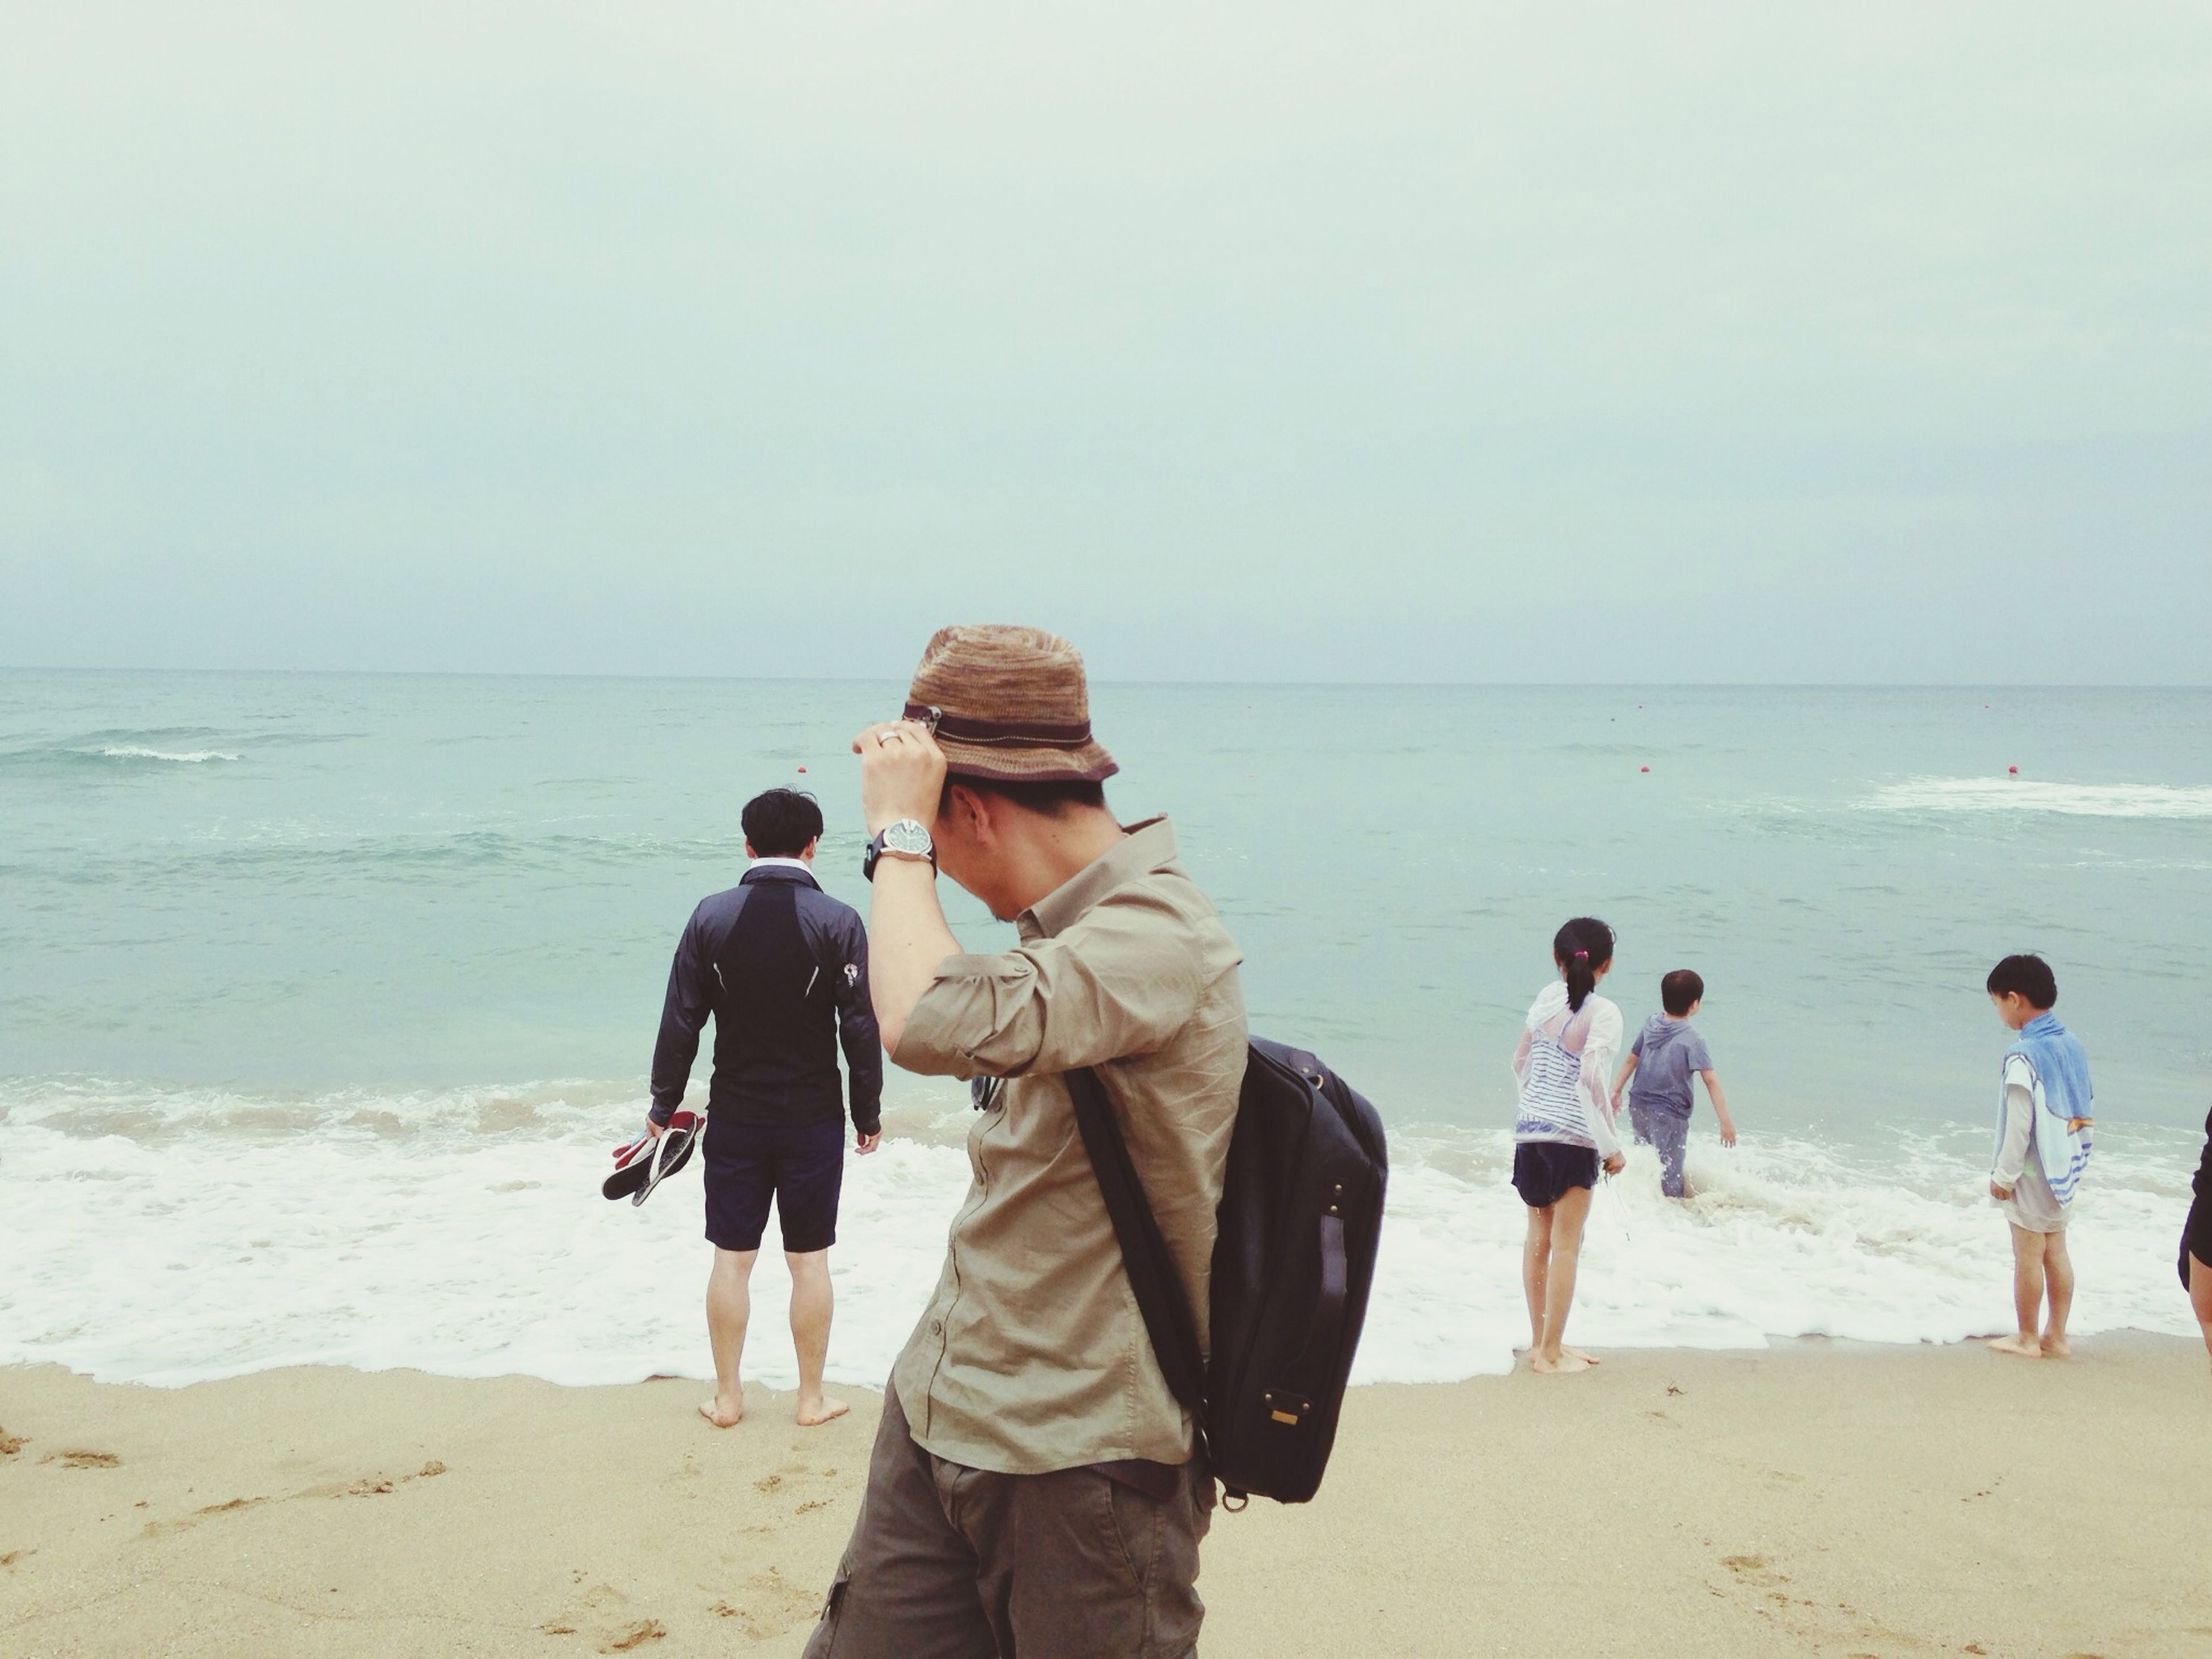 sea, horizon over water, beach, water, shore, lifestyles, leisure activity, sand, rear view, vacations, togetherness, clear sky, full length, standing, sky, men, wave, bonding